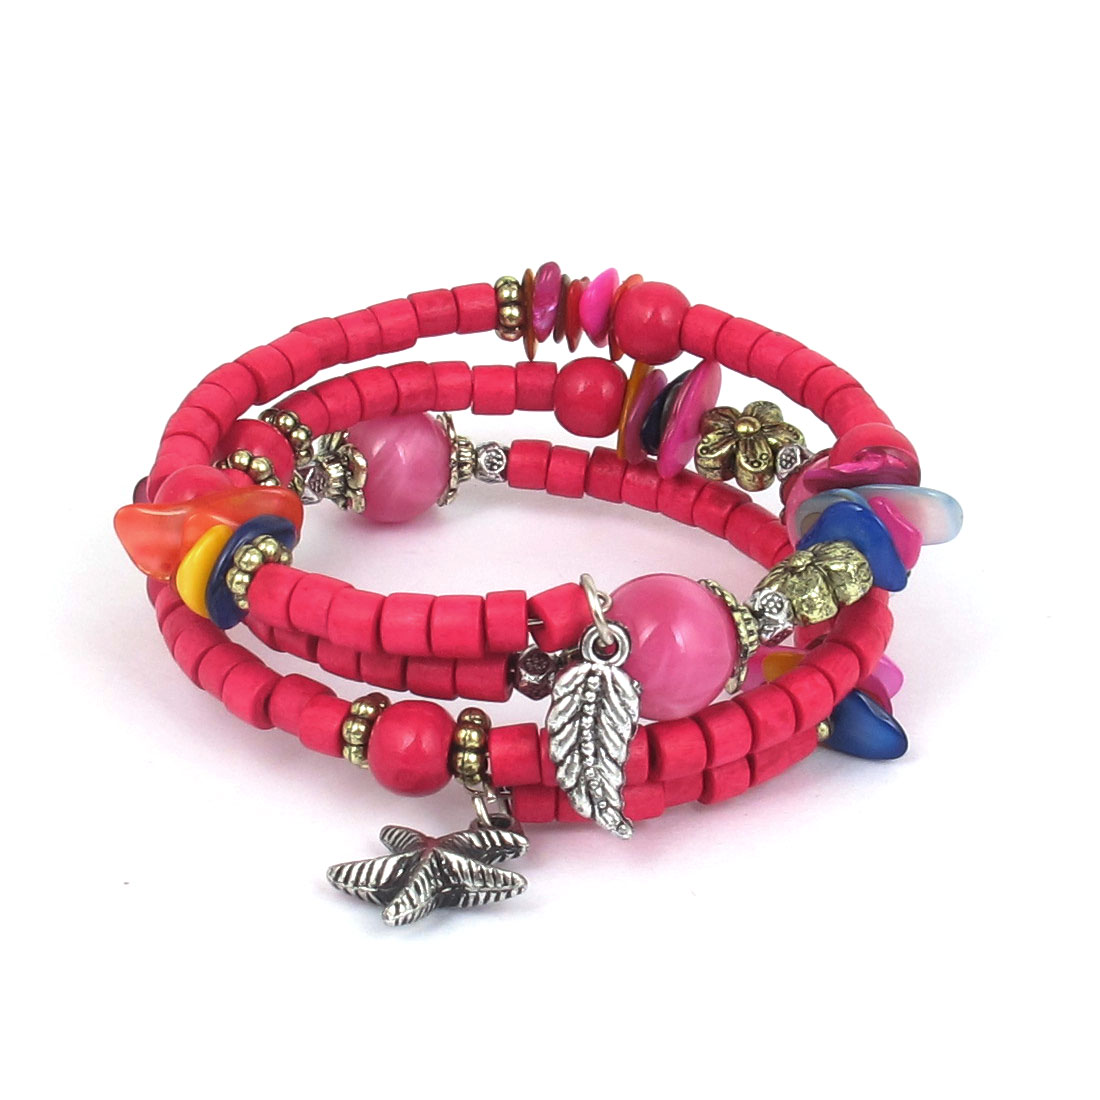 Women Handmade National Style Wooden Cylinder Beads Flower Decor 3-layer Bangle Bracelet Fuchsia